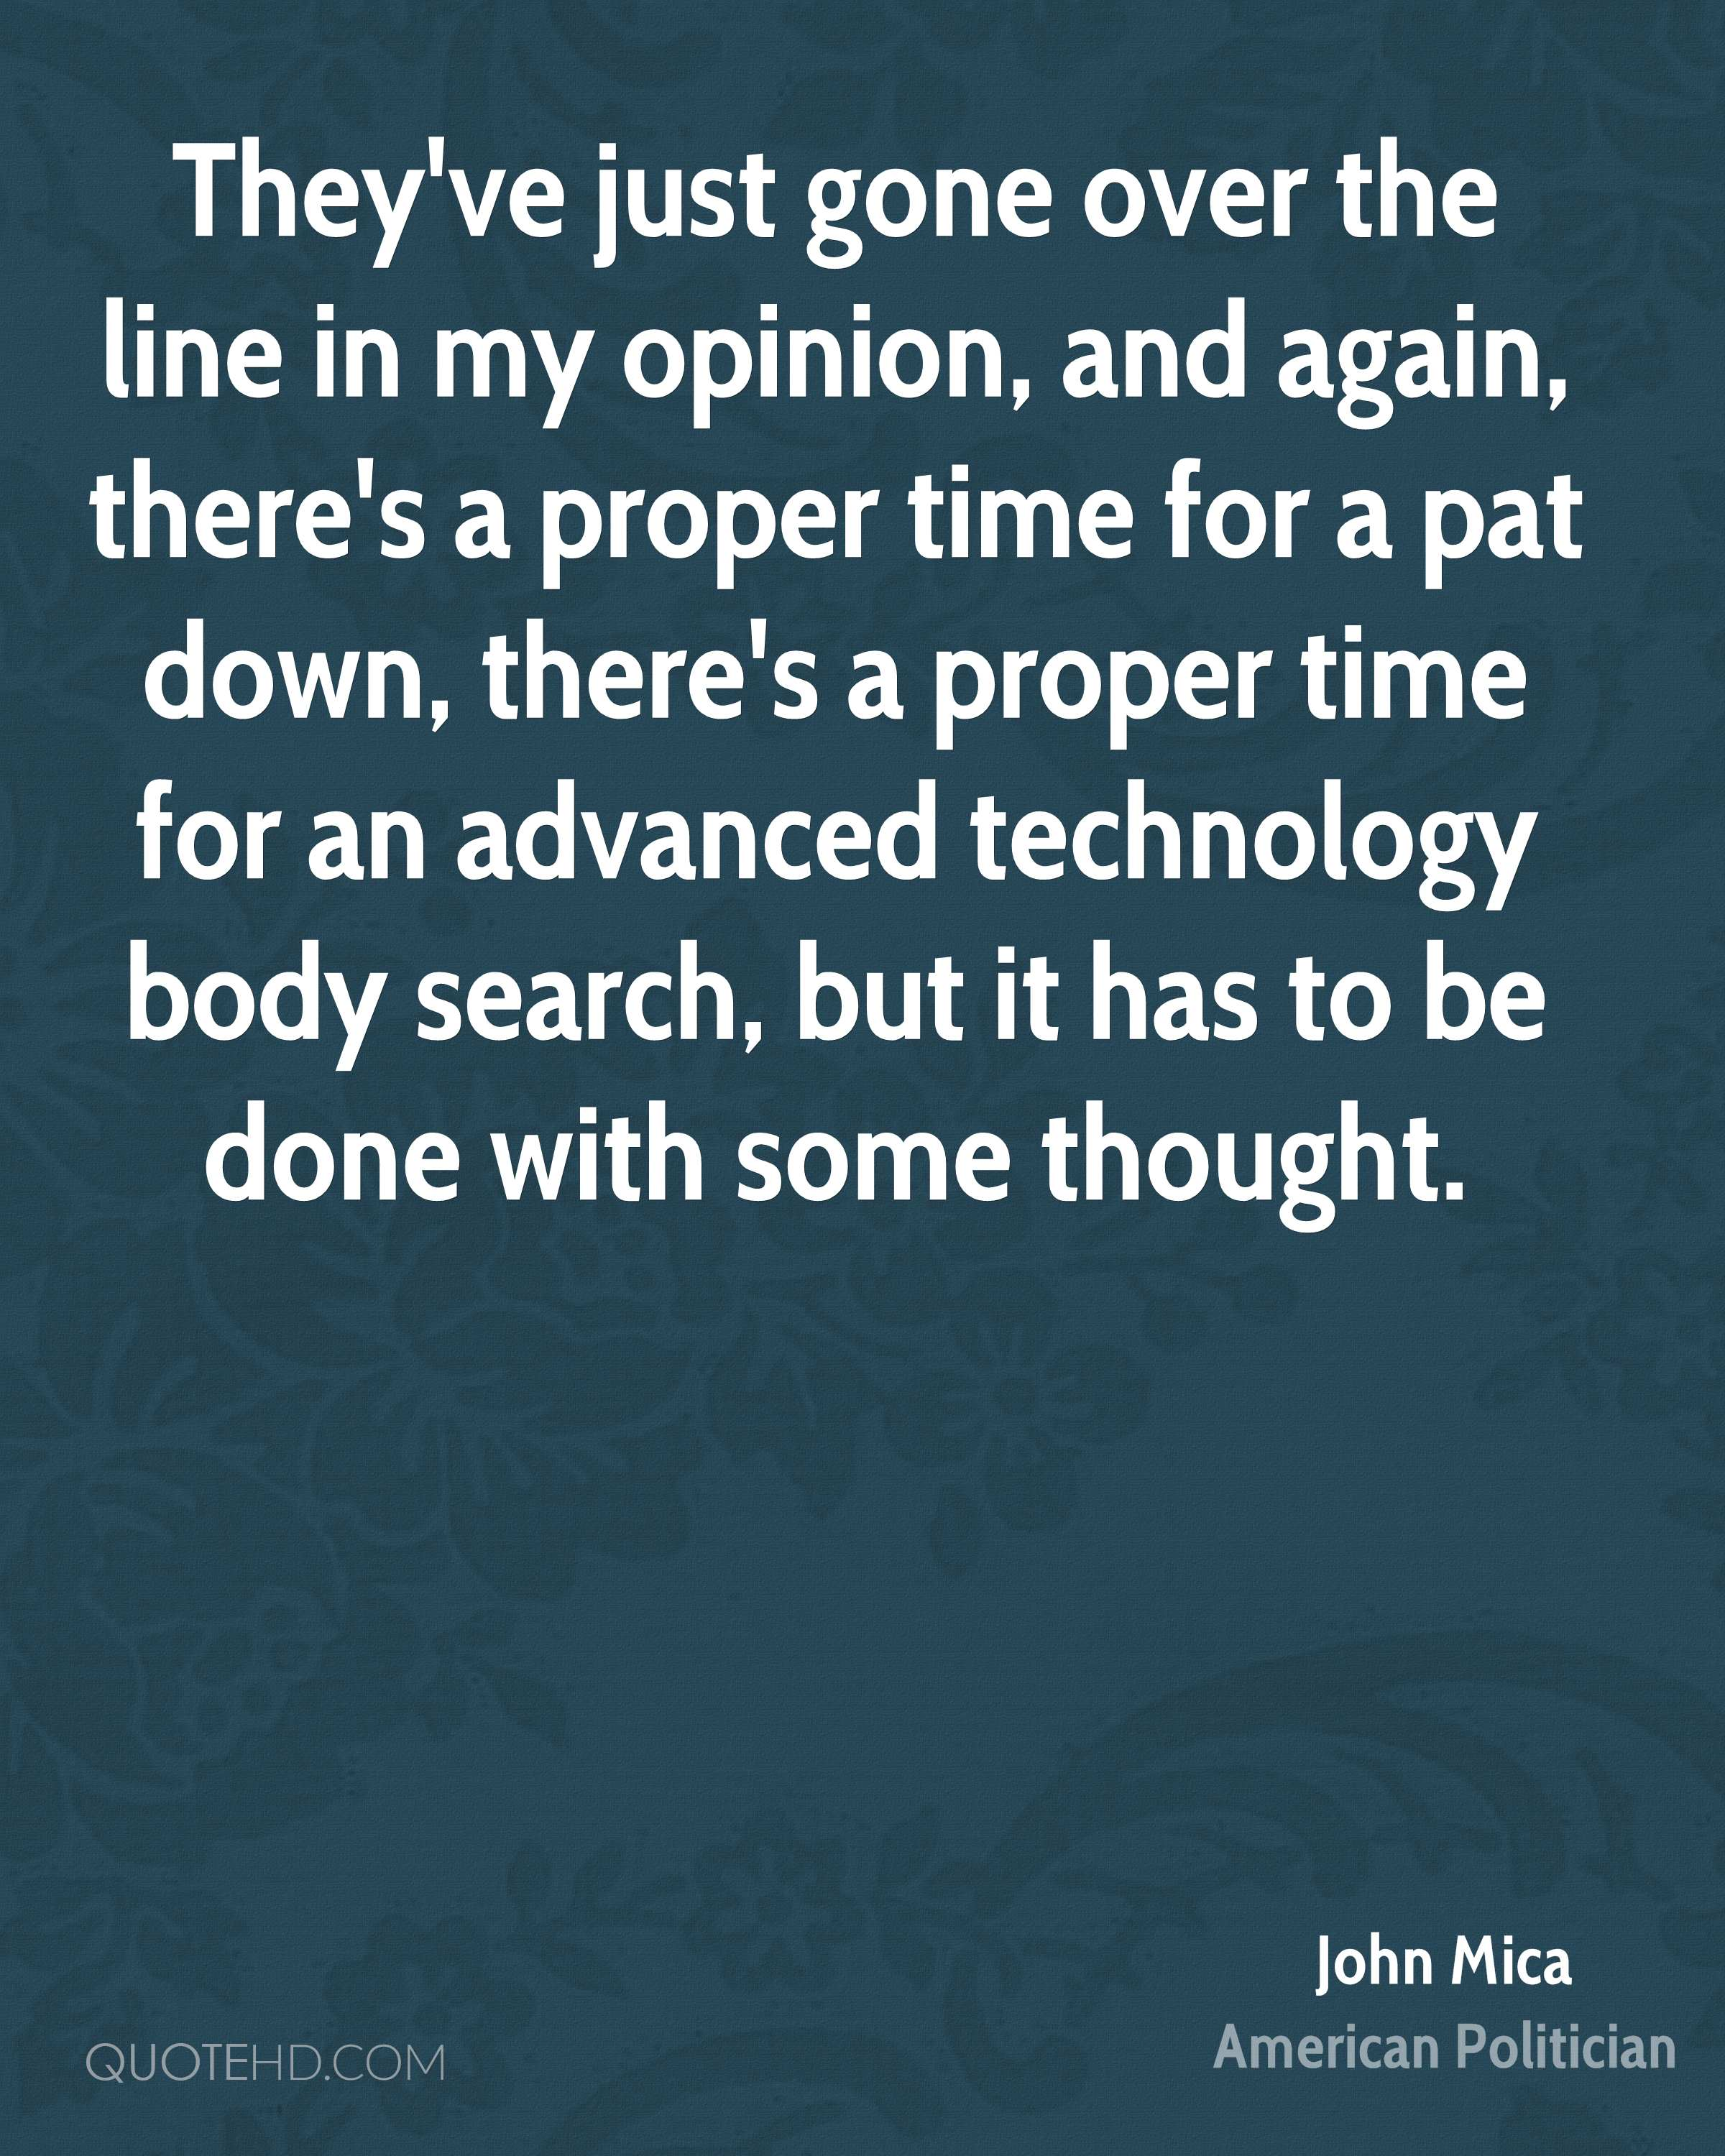 They've just gone over the line in my opinion, and again, there's a proper time for a pat down, there's a proper time for an advanced technology body search, but it has to be done with some thought.